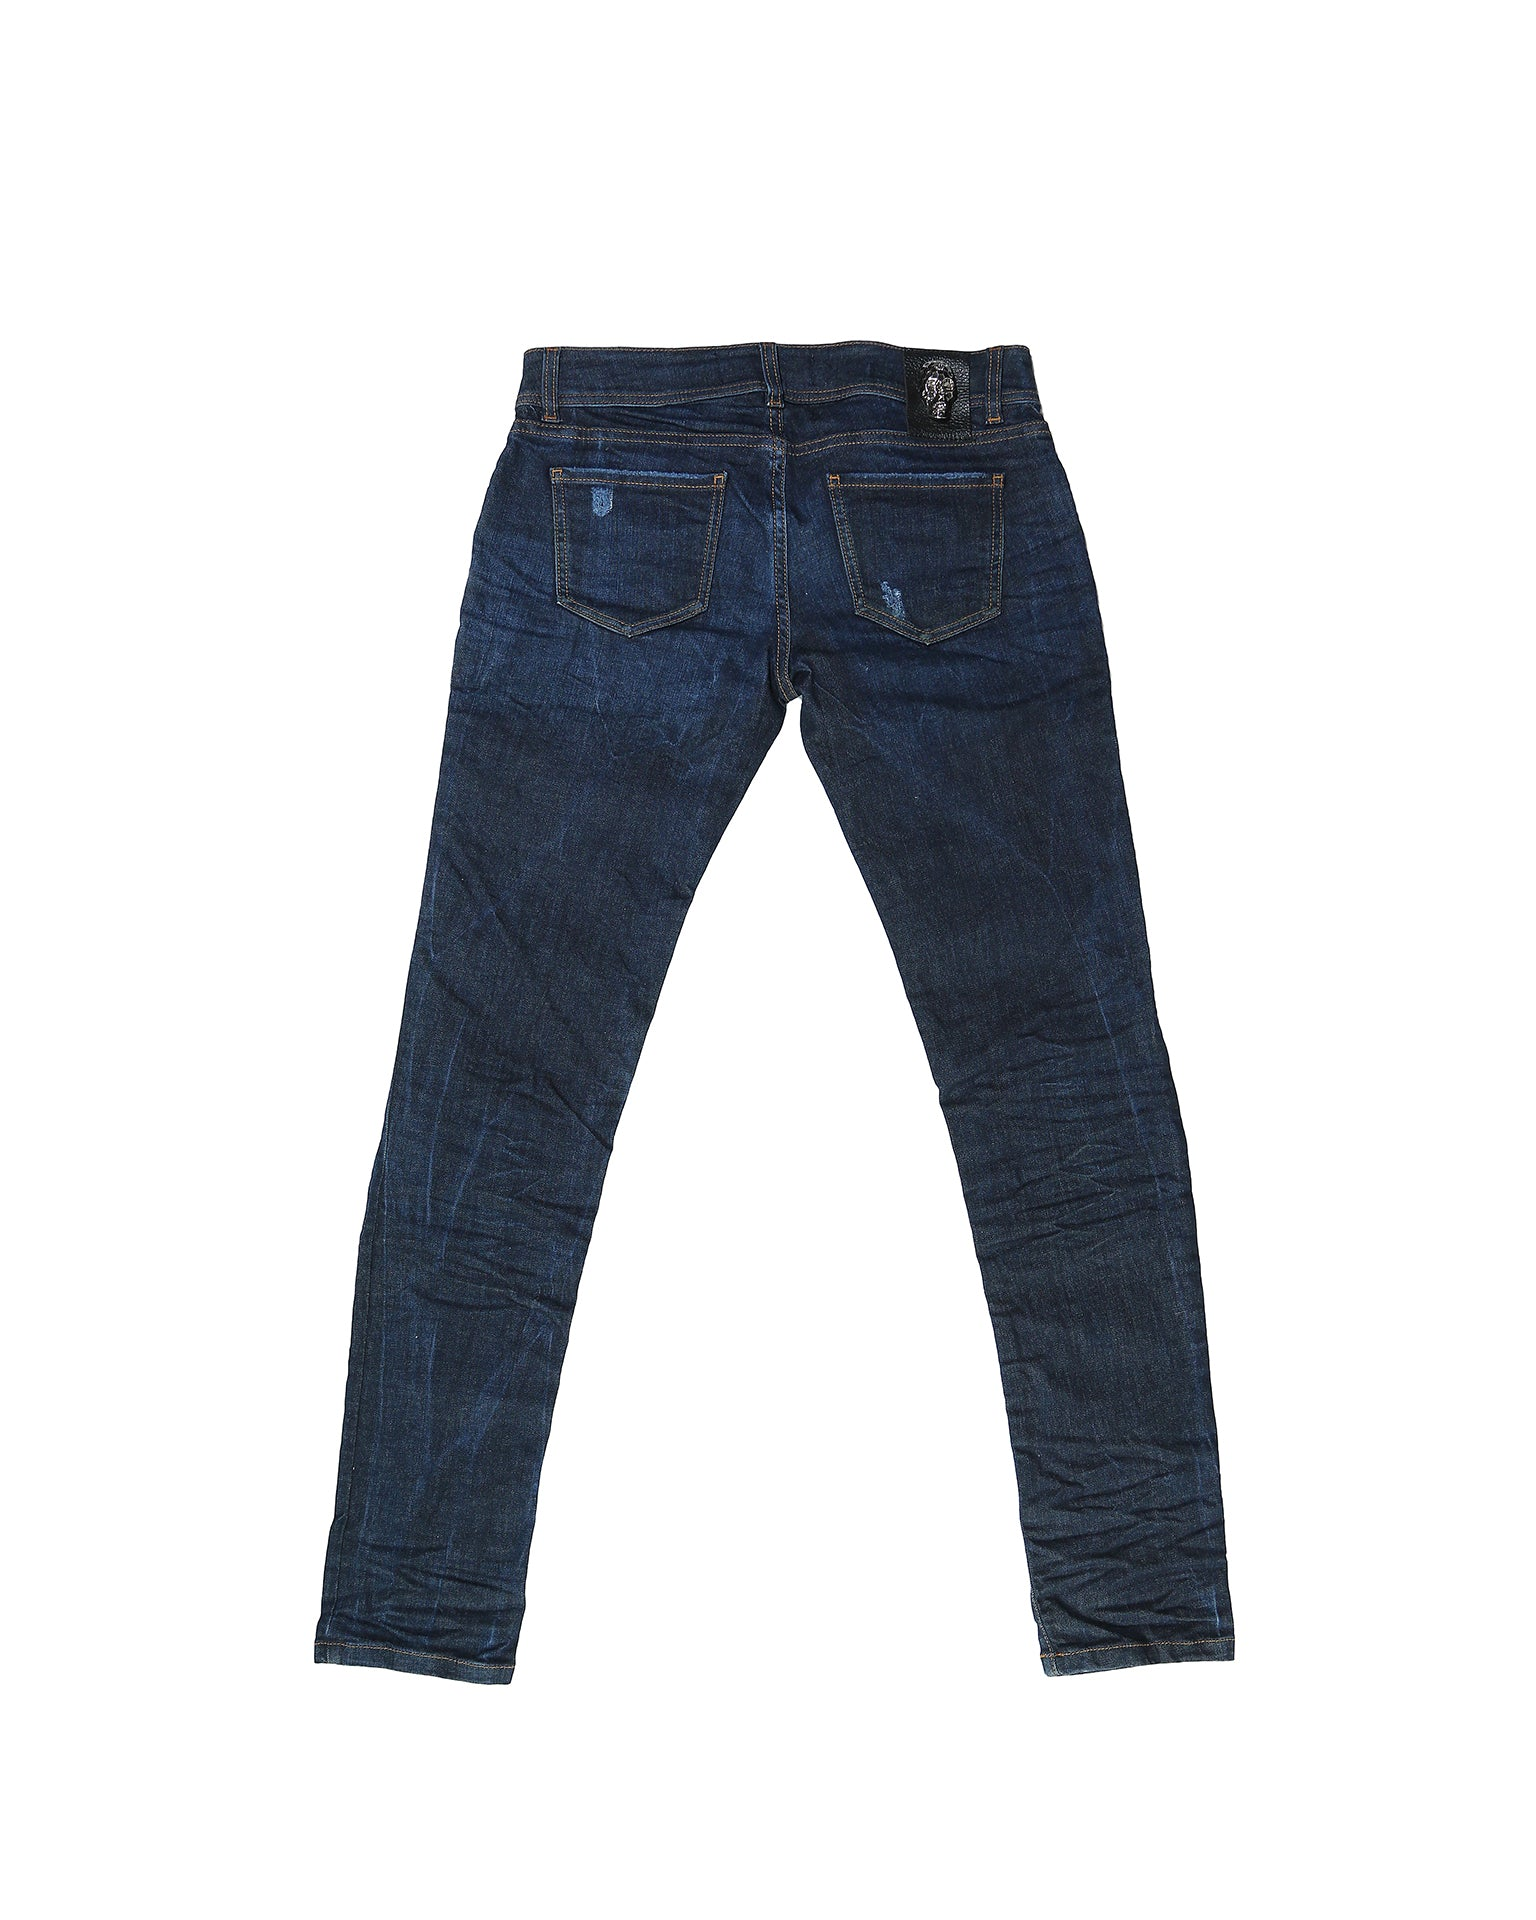 Philipp Plein Blue Denim Trousers Slim Fit